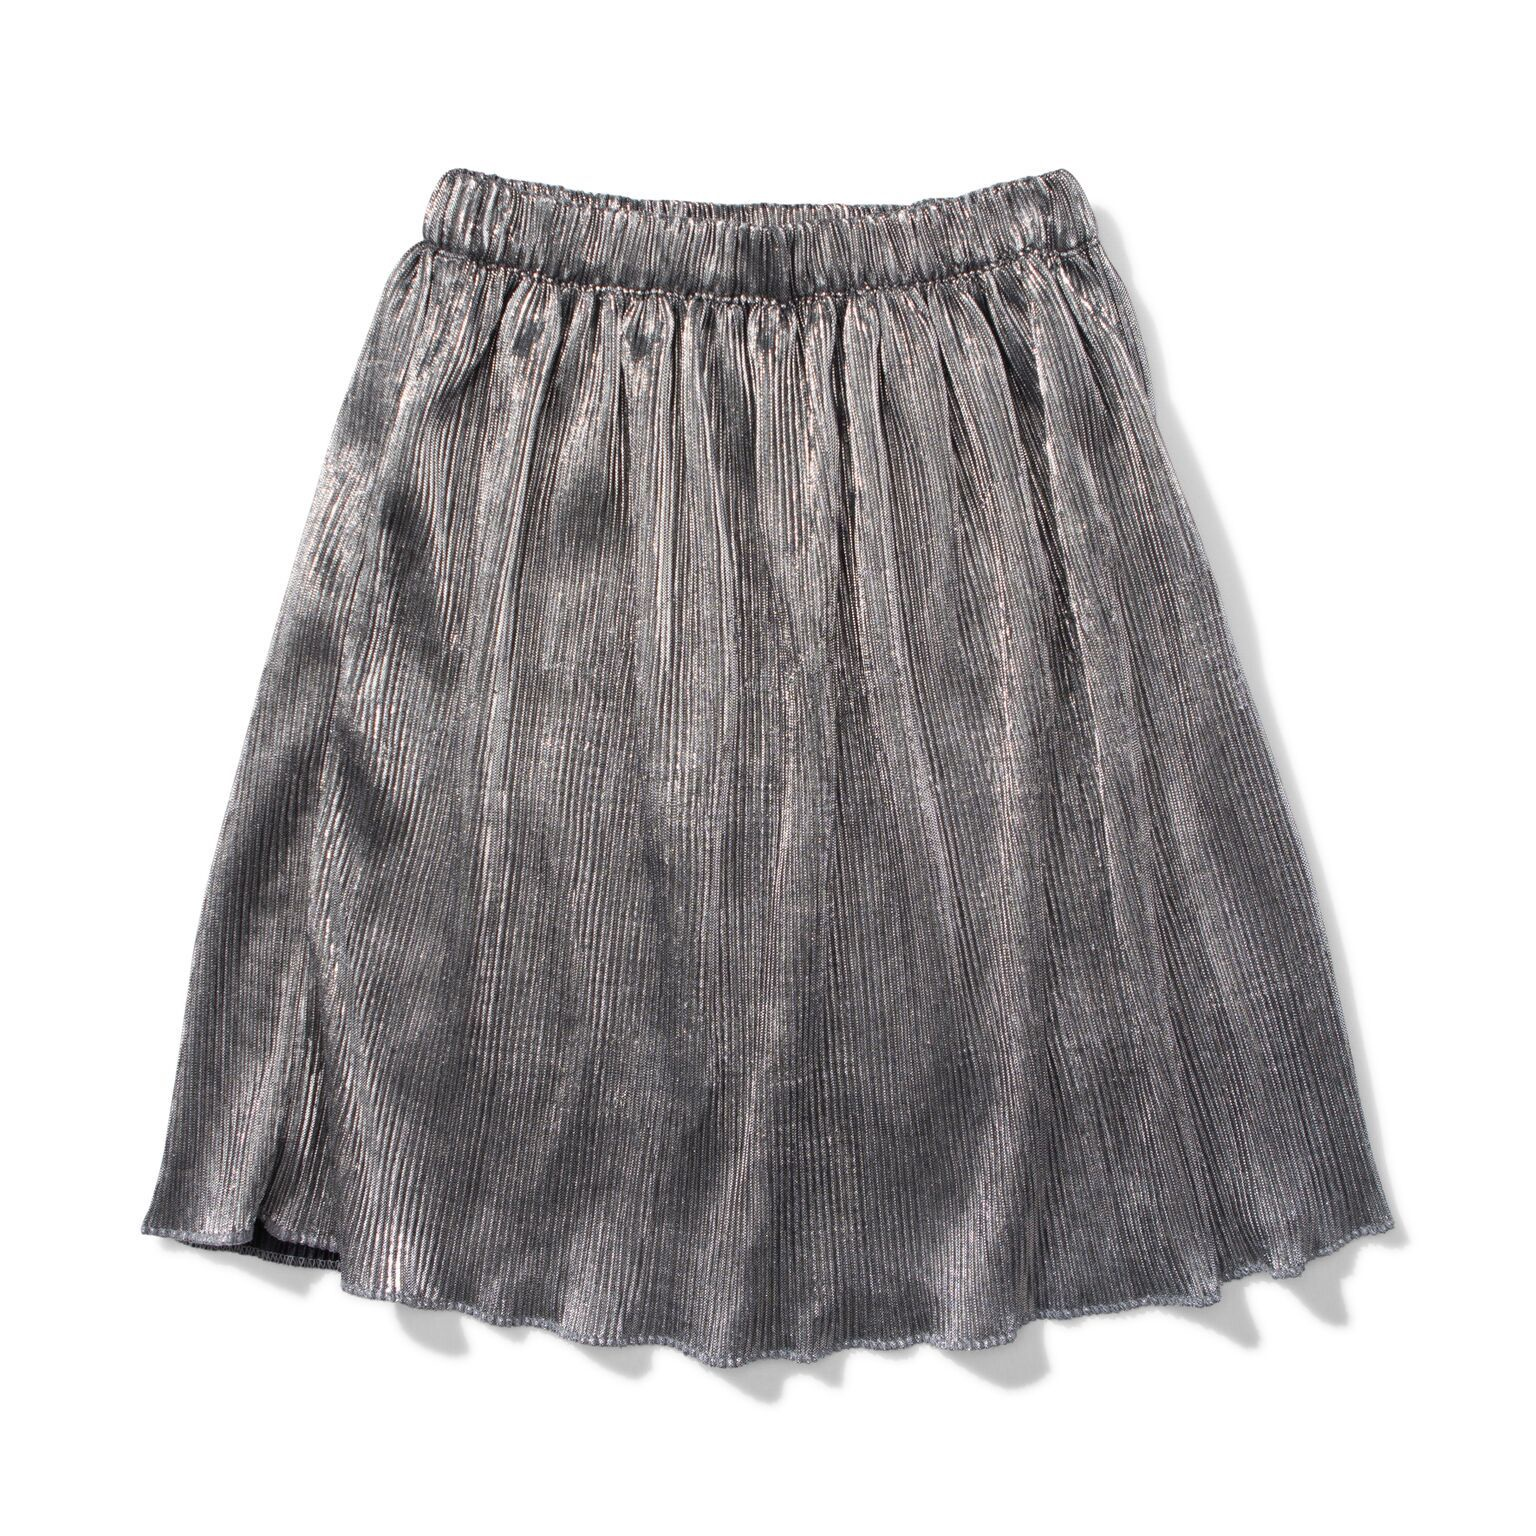 Munster LIVVY Skirt